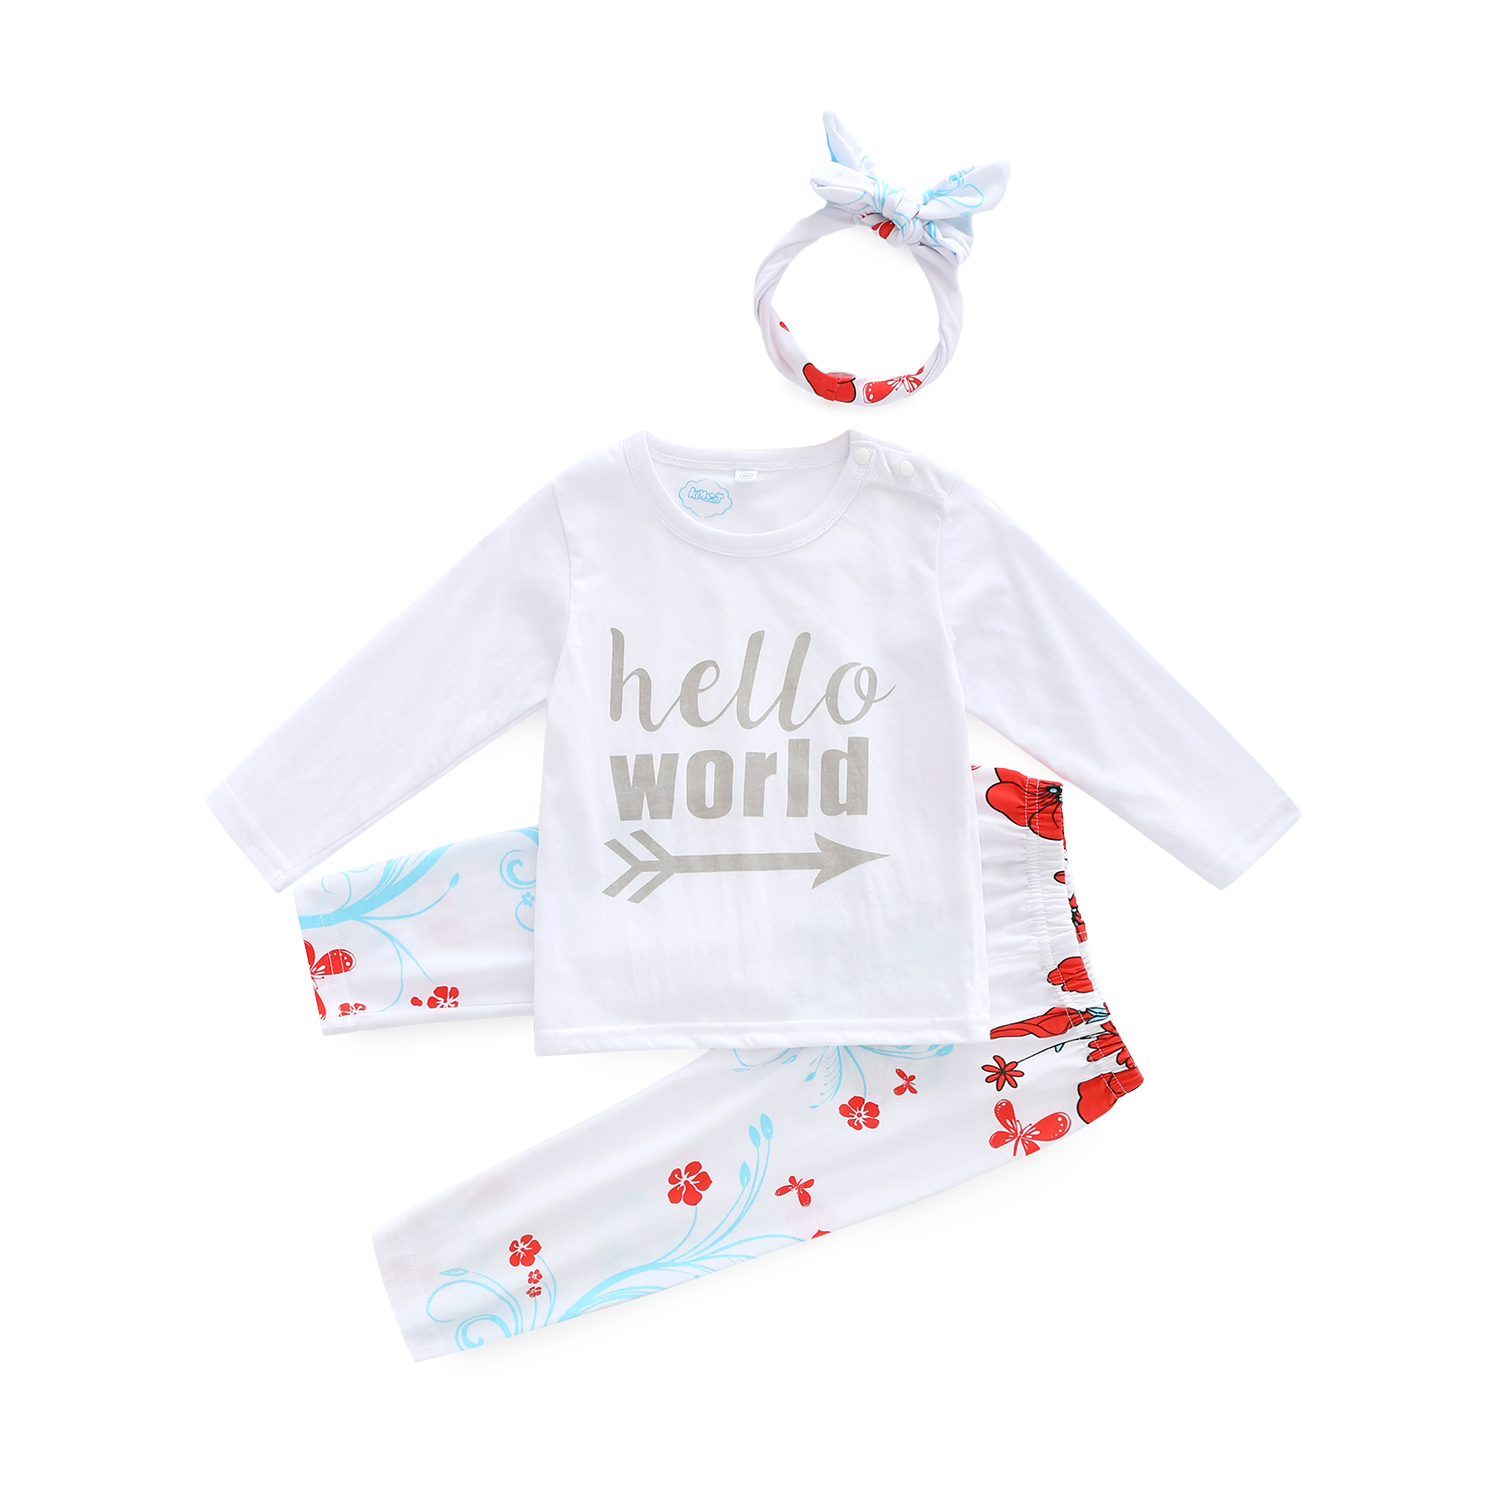 Foral baby girl clothes newborn clothing set newborn clothes hello world printed t-shirt with pants and free headband 3pcs/set